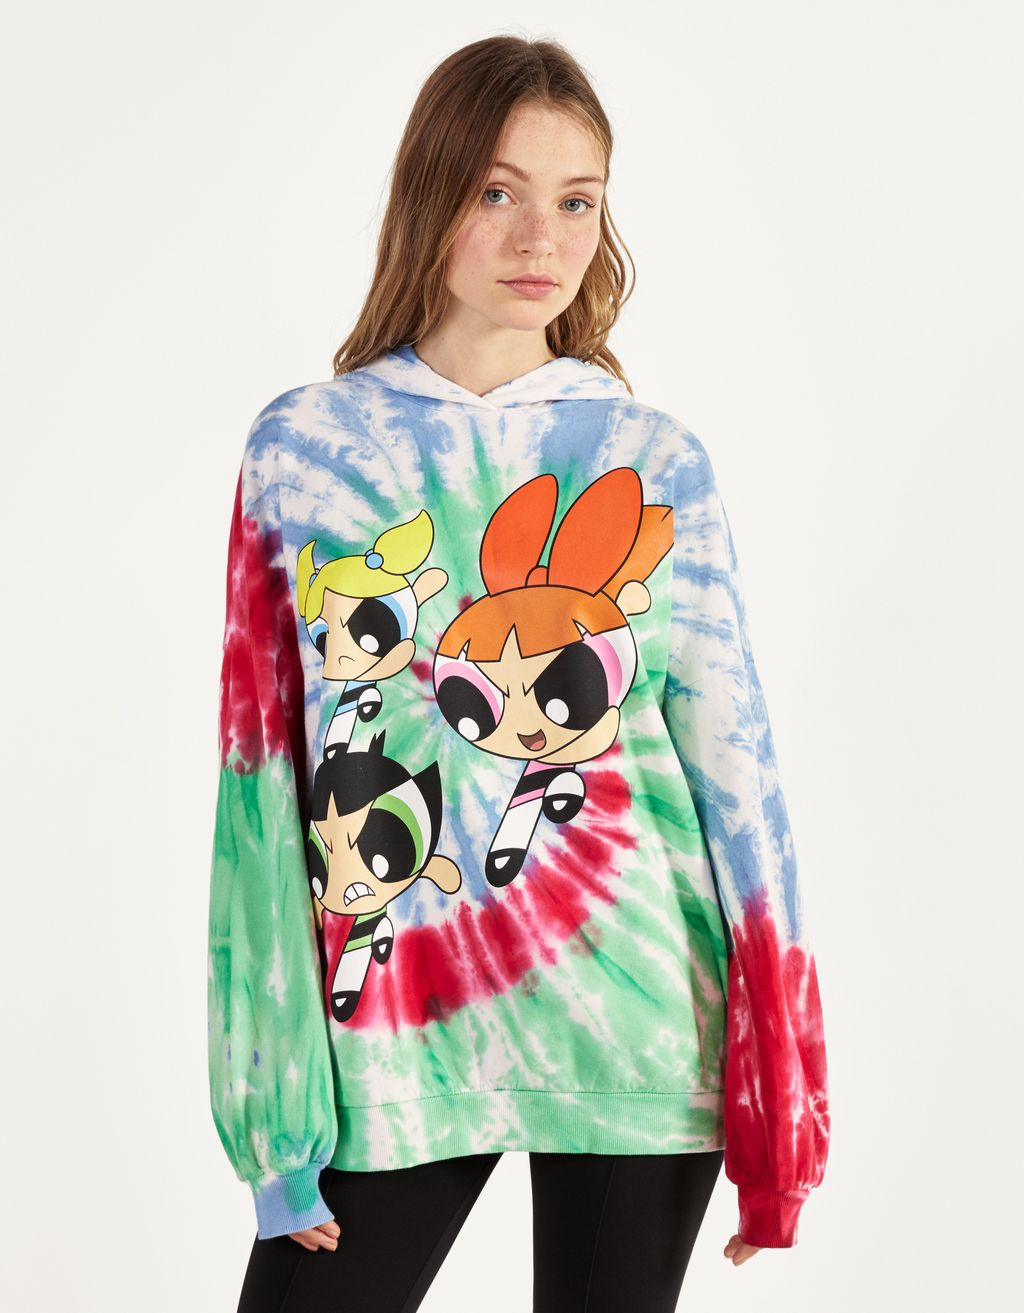 The Powerpuff Girls x Bershka pulover s kapuco